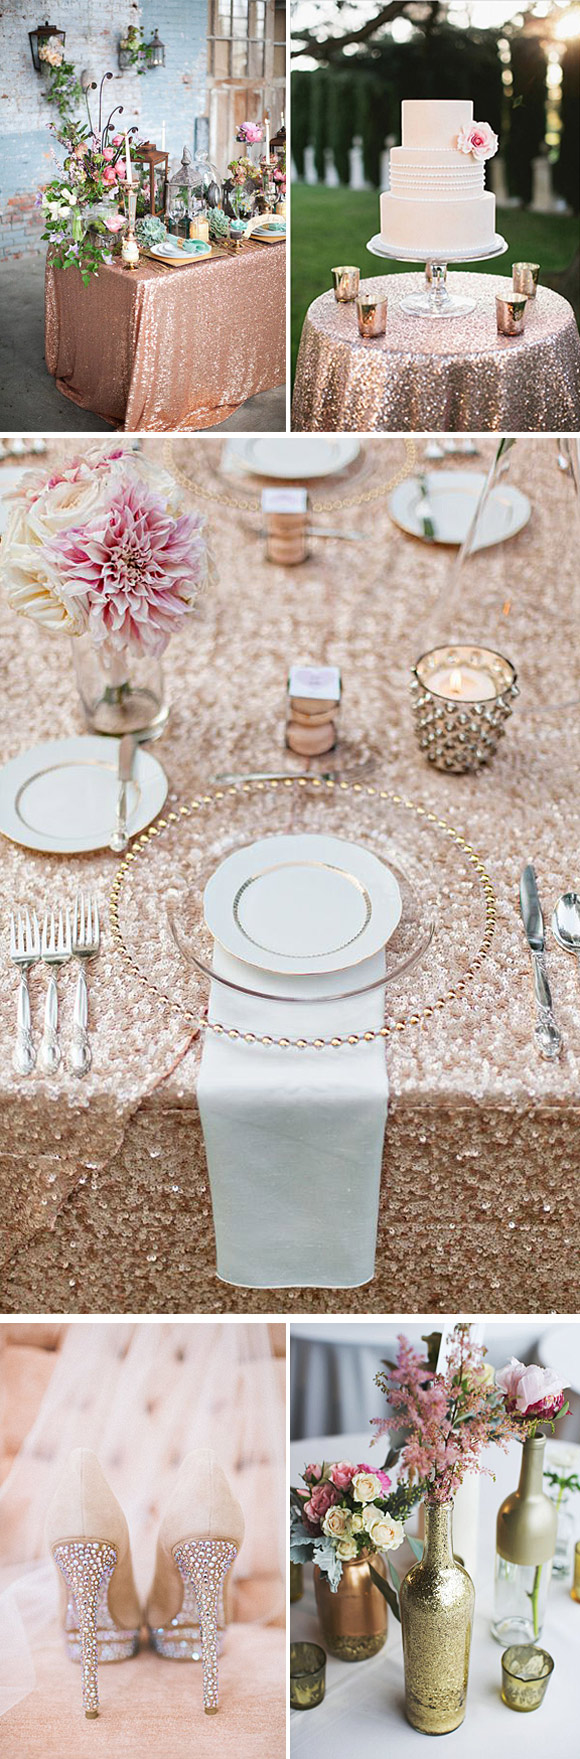 Ideas para decorar las mesas en bodas con purpurina